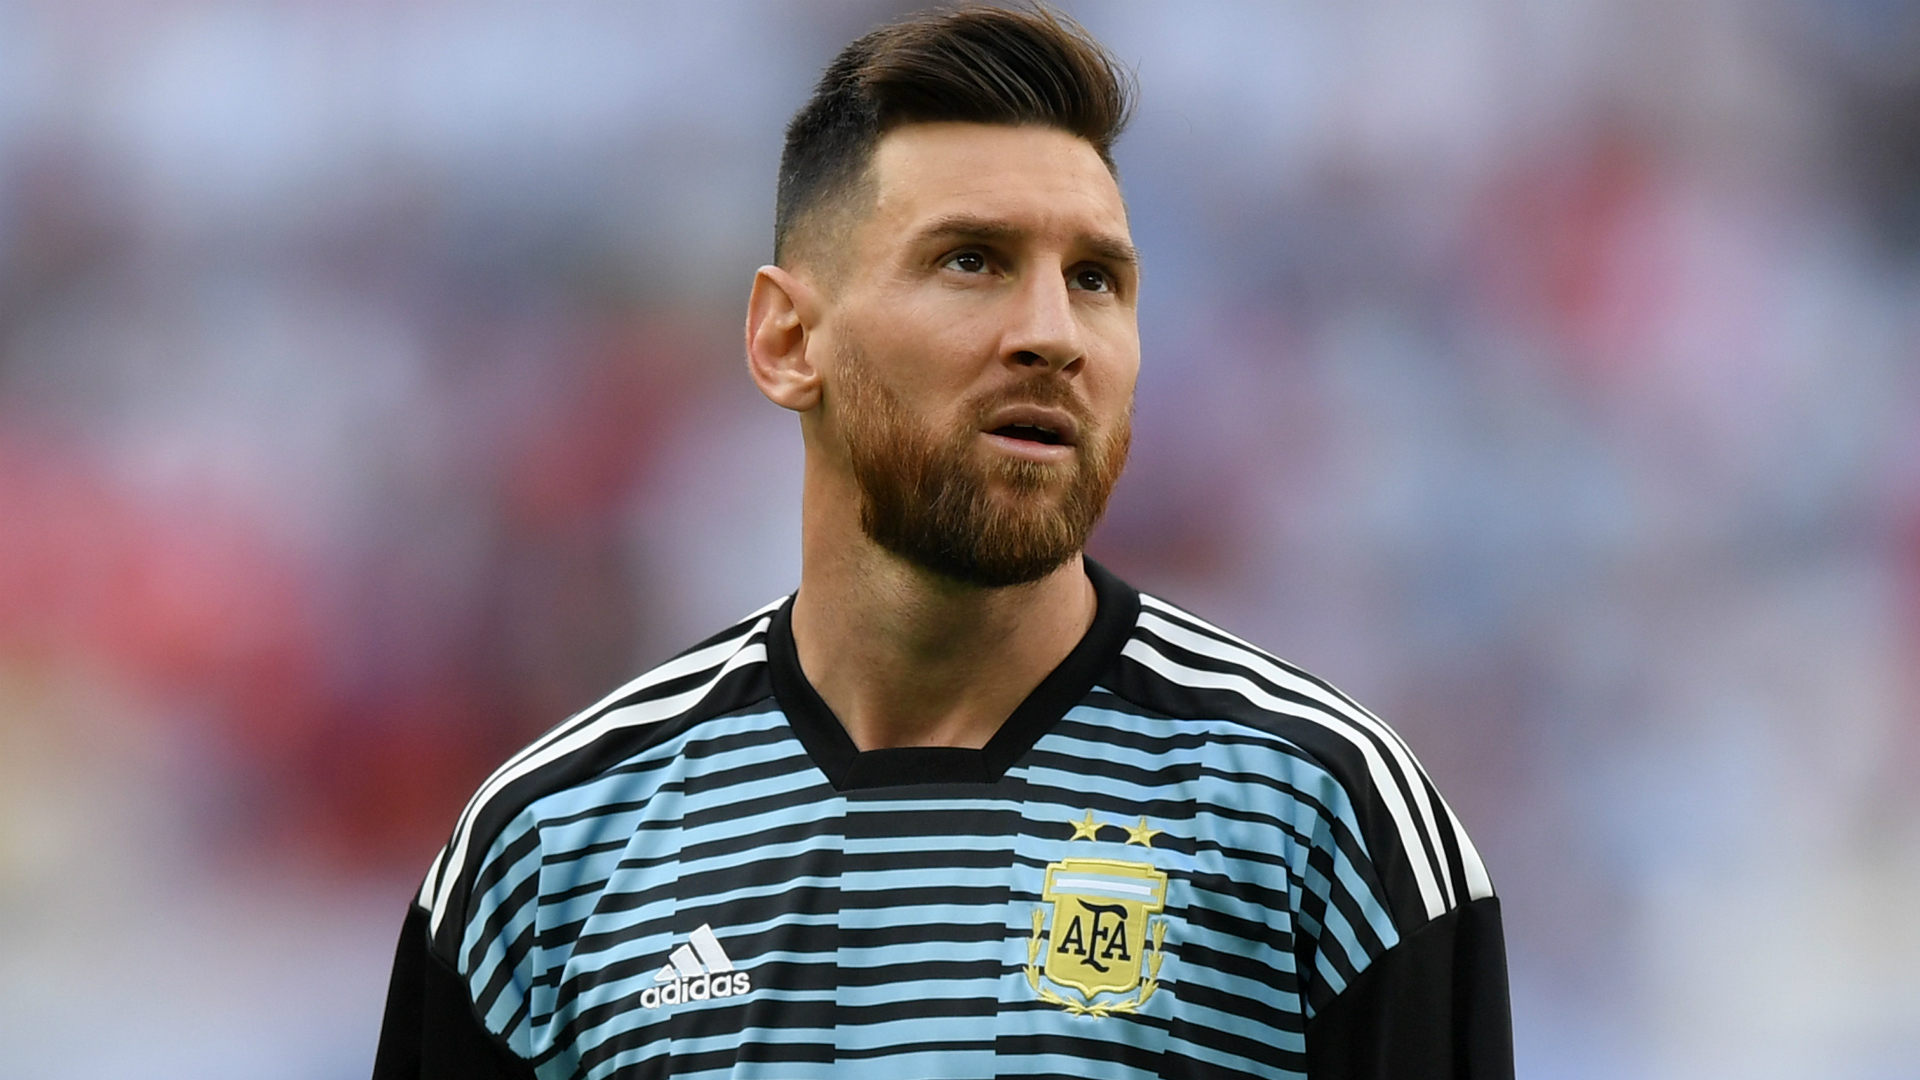 Argentina coach hopeful Messi will return to national team